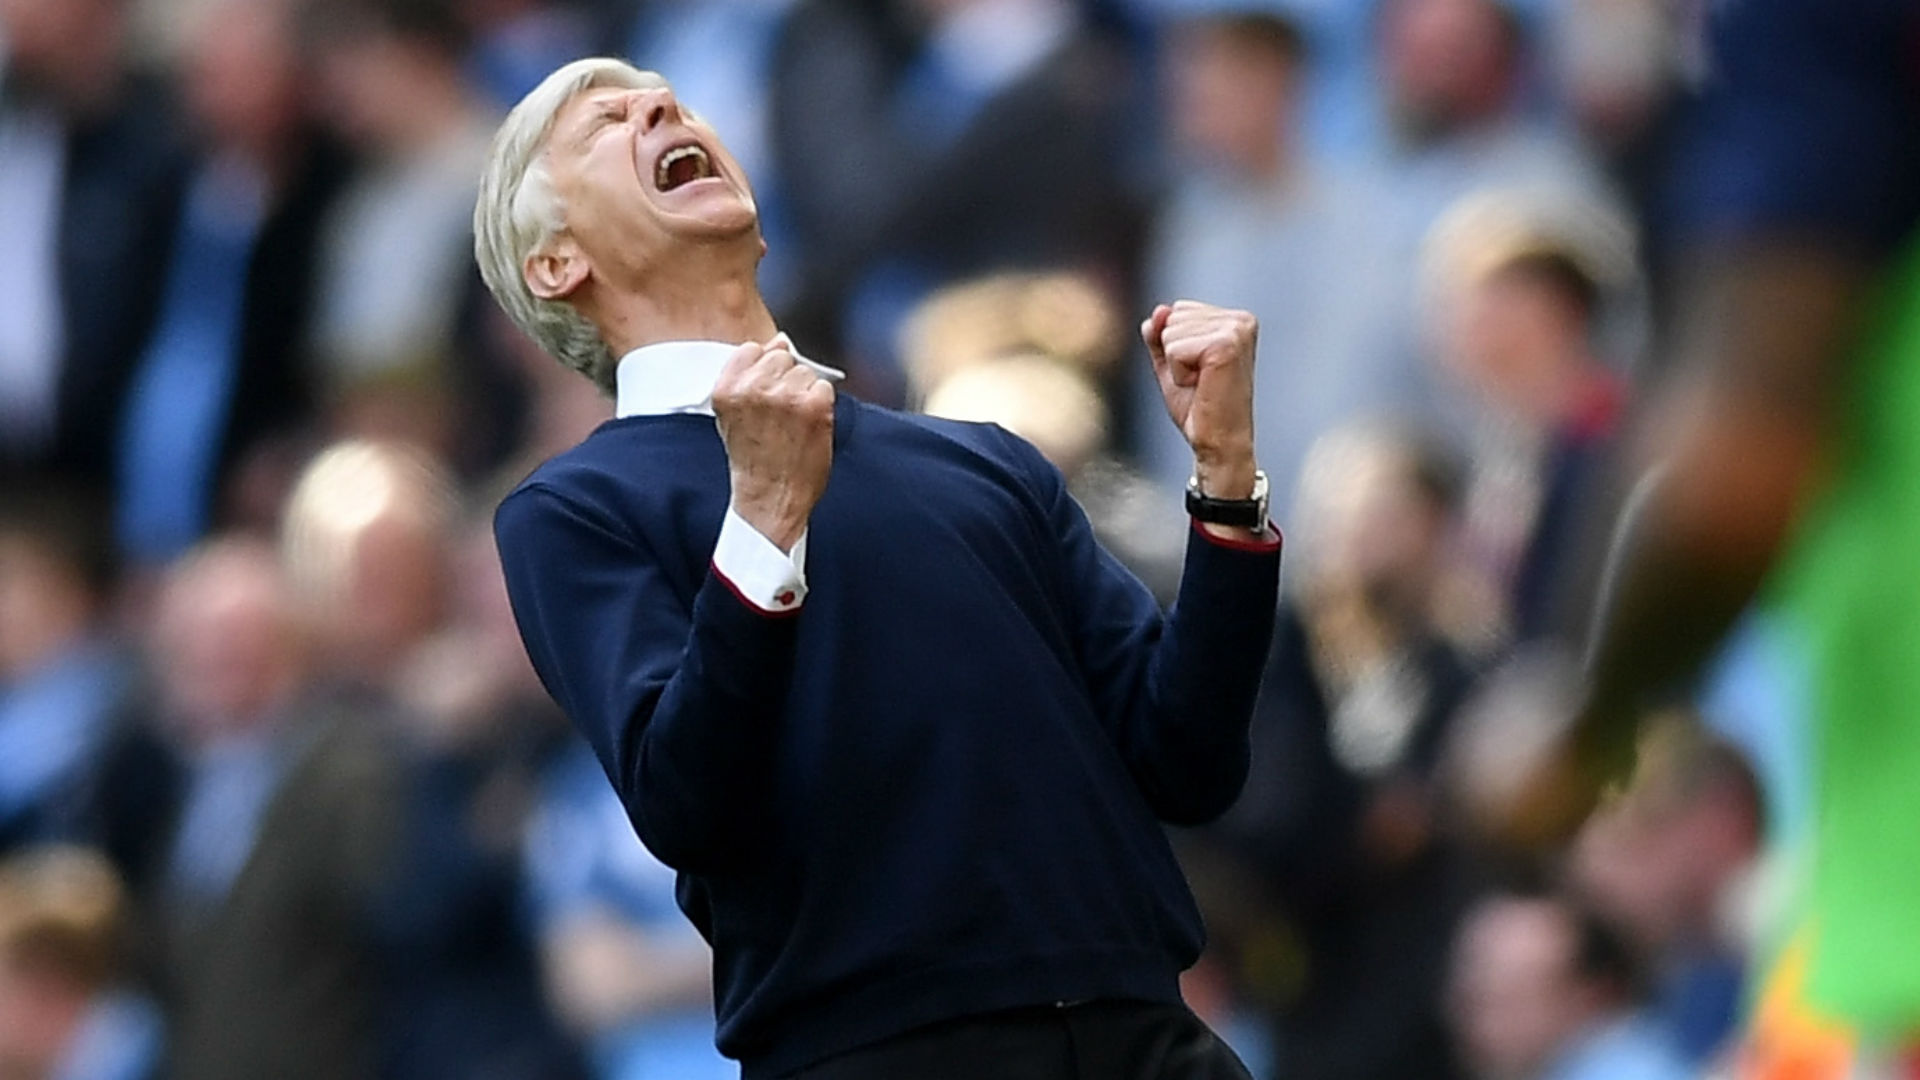 Wenger In? Arsenal fans back on board as FA Cup final spot is secured